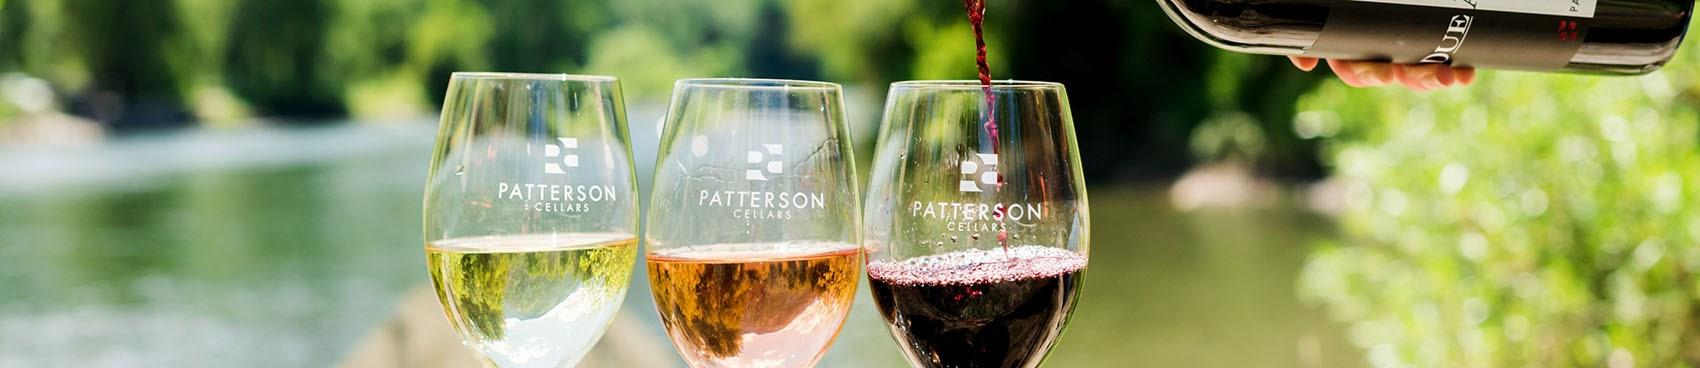 Purchase Tickets to Wine Club Appreciation BBQ - Saturday, August 17 at Patterson Cellars on CellarPass